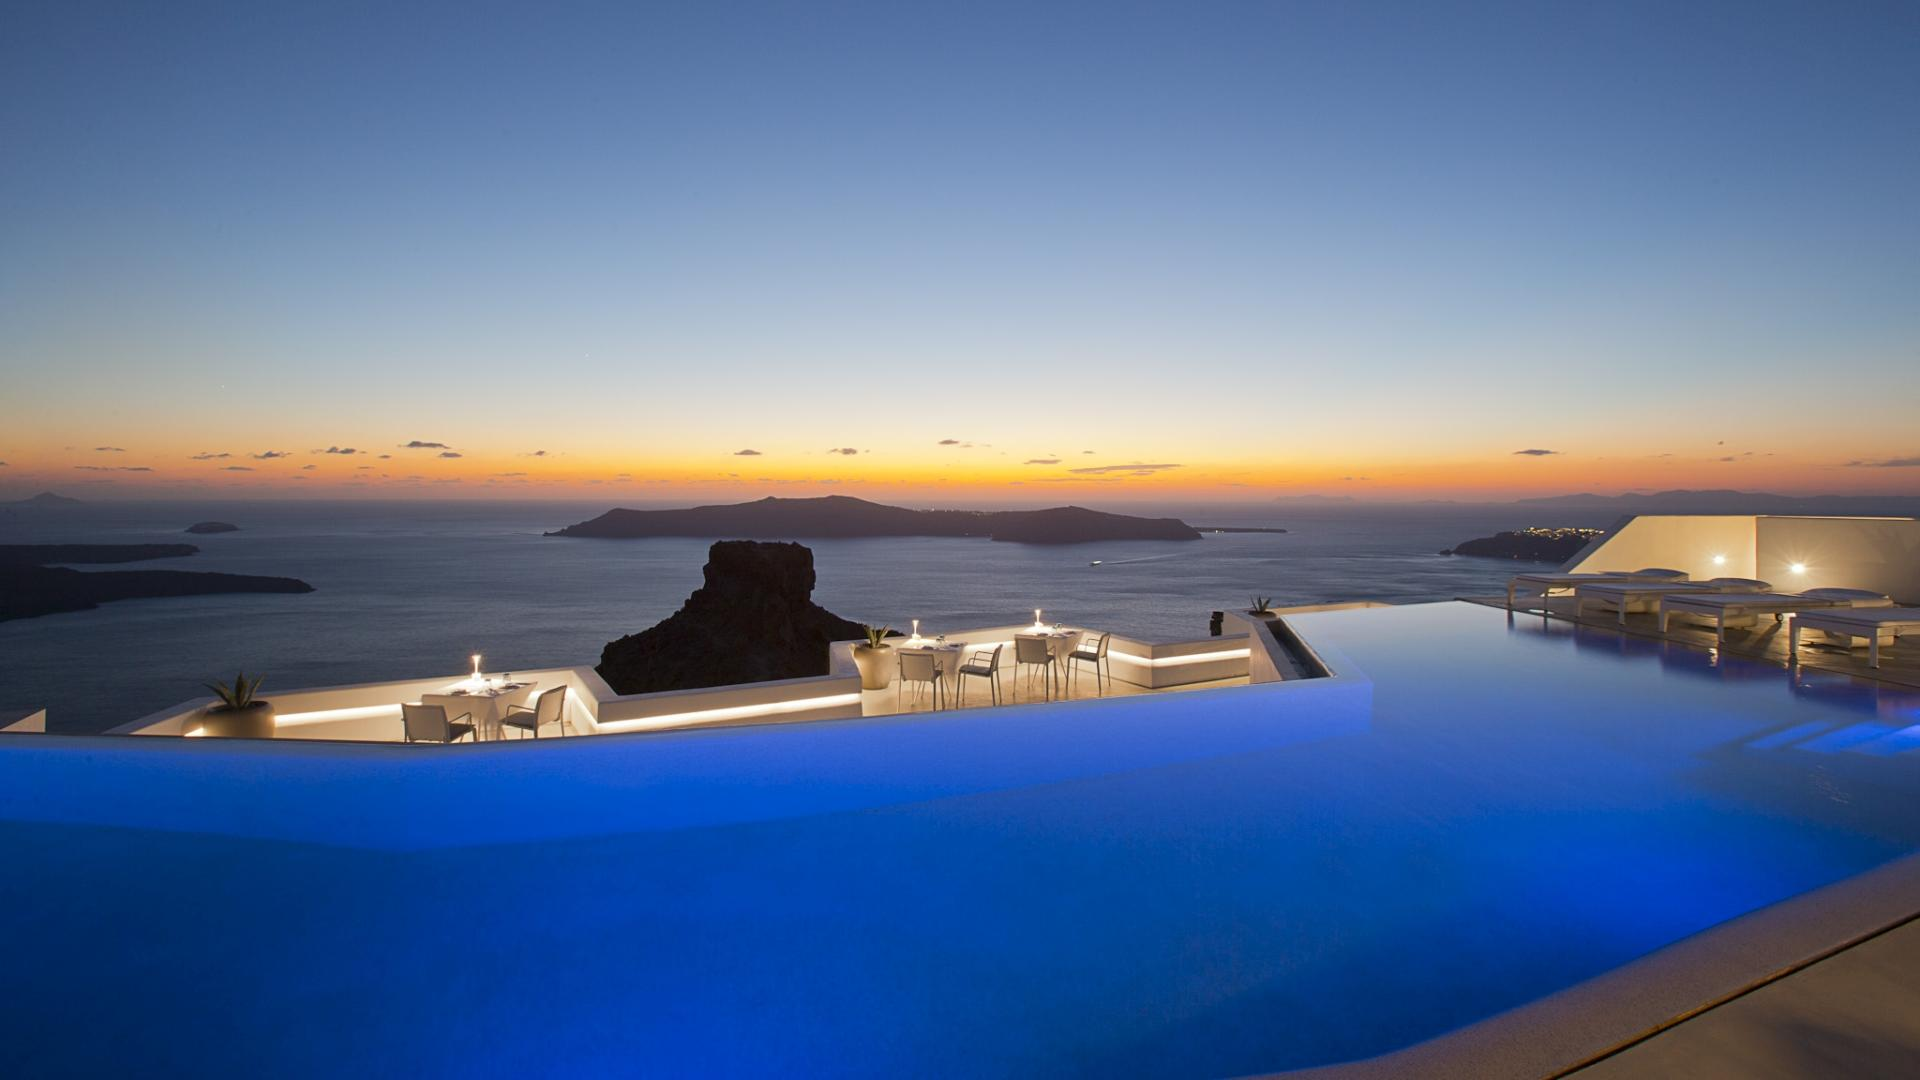 Pool Grace Hotel Santorini 429036   HD Wallpaper Download 1920x1080